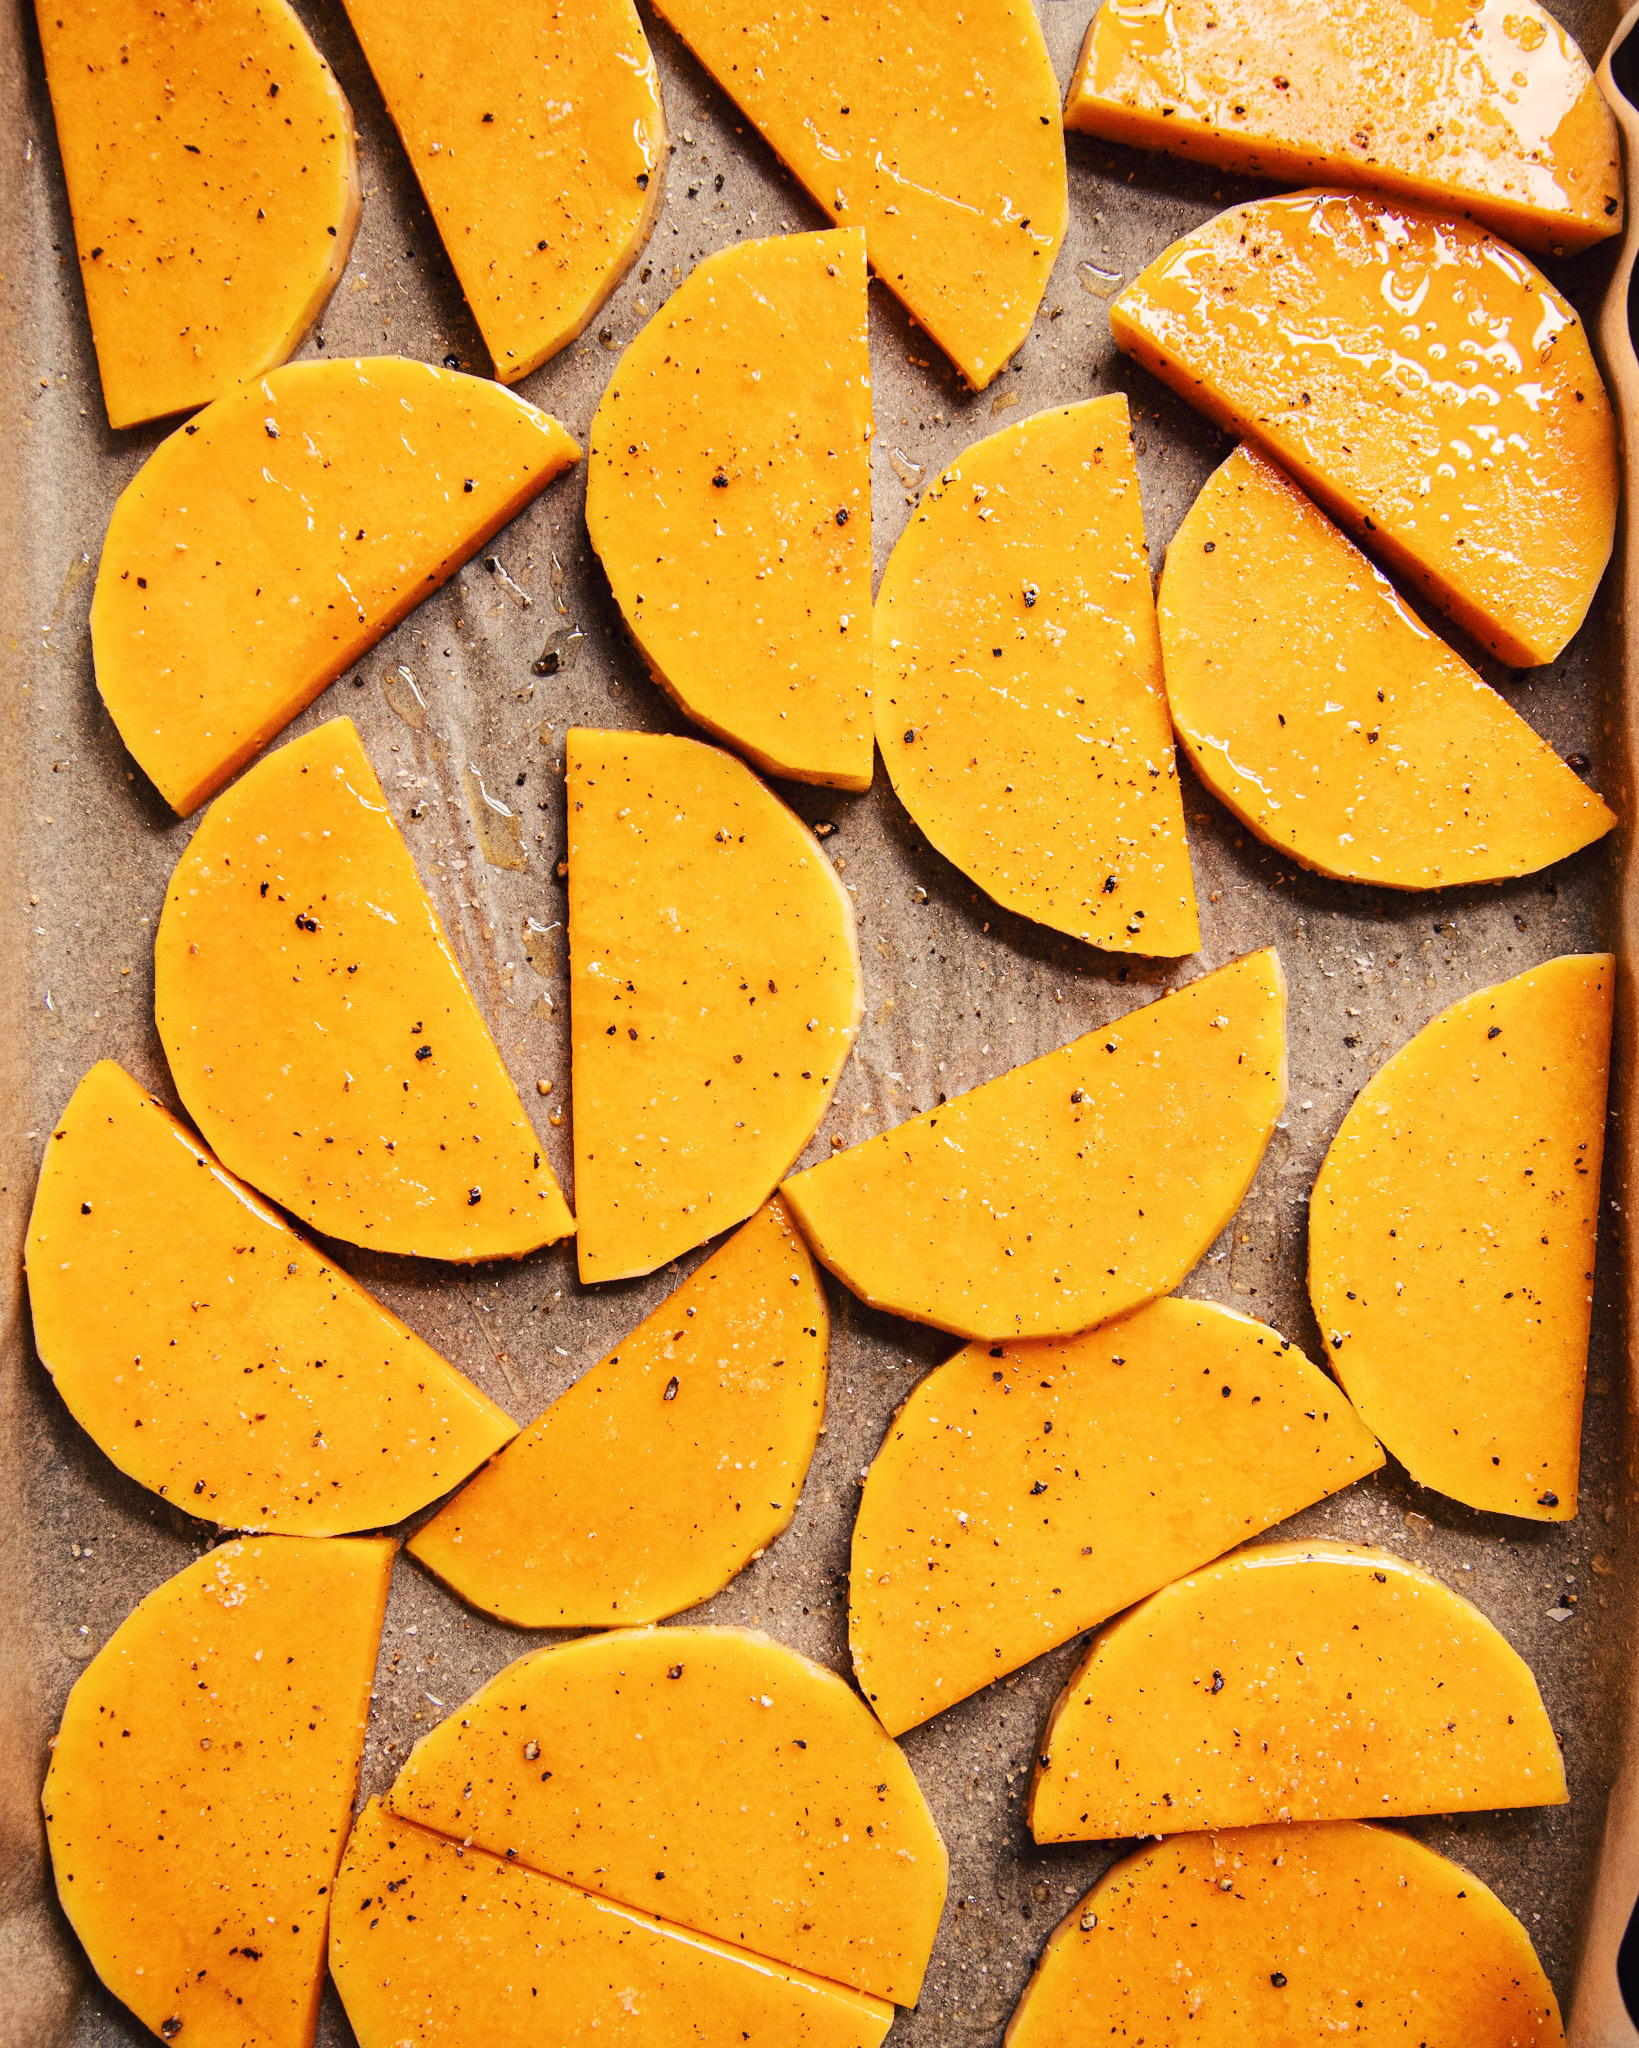 Overhead shot of slices of butternut squash on a parchment-lined baking sheet.